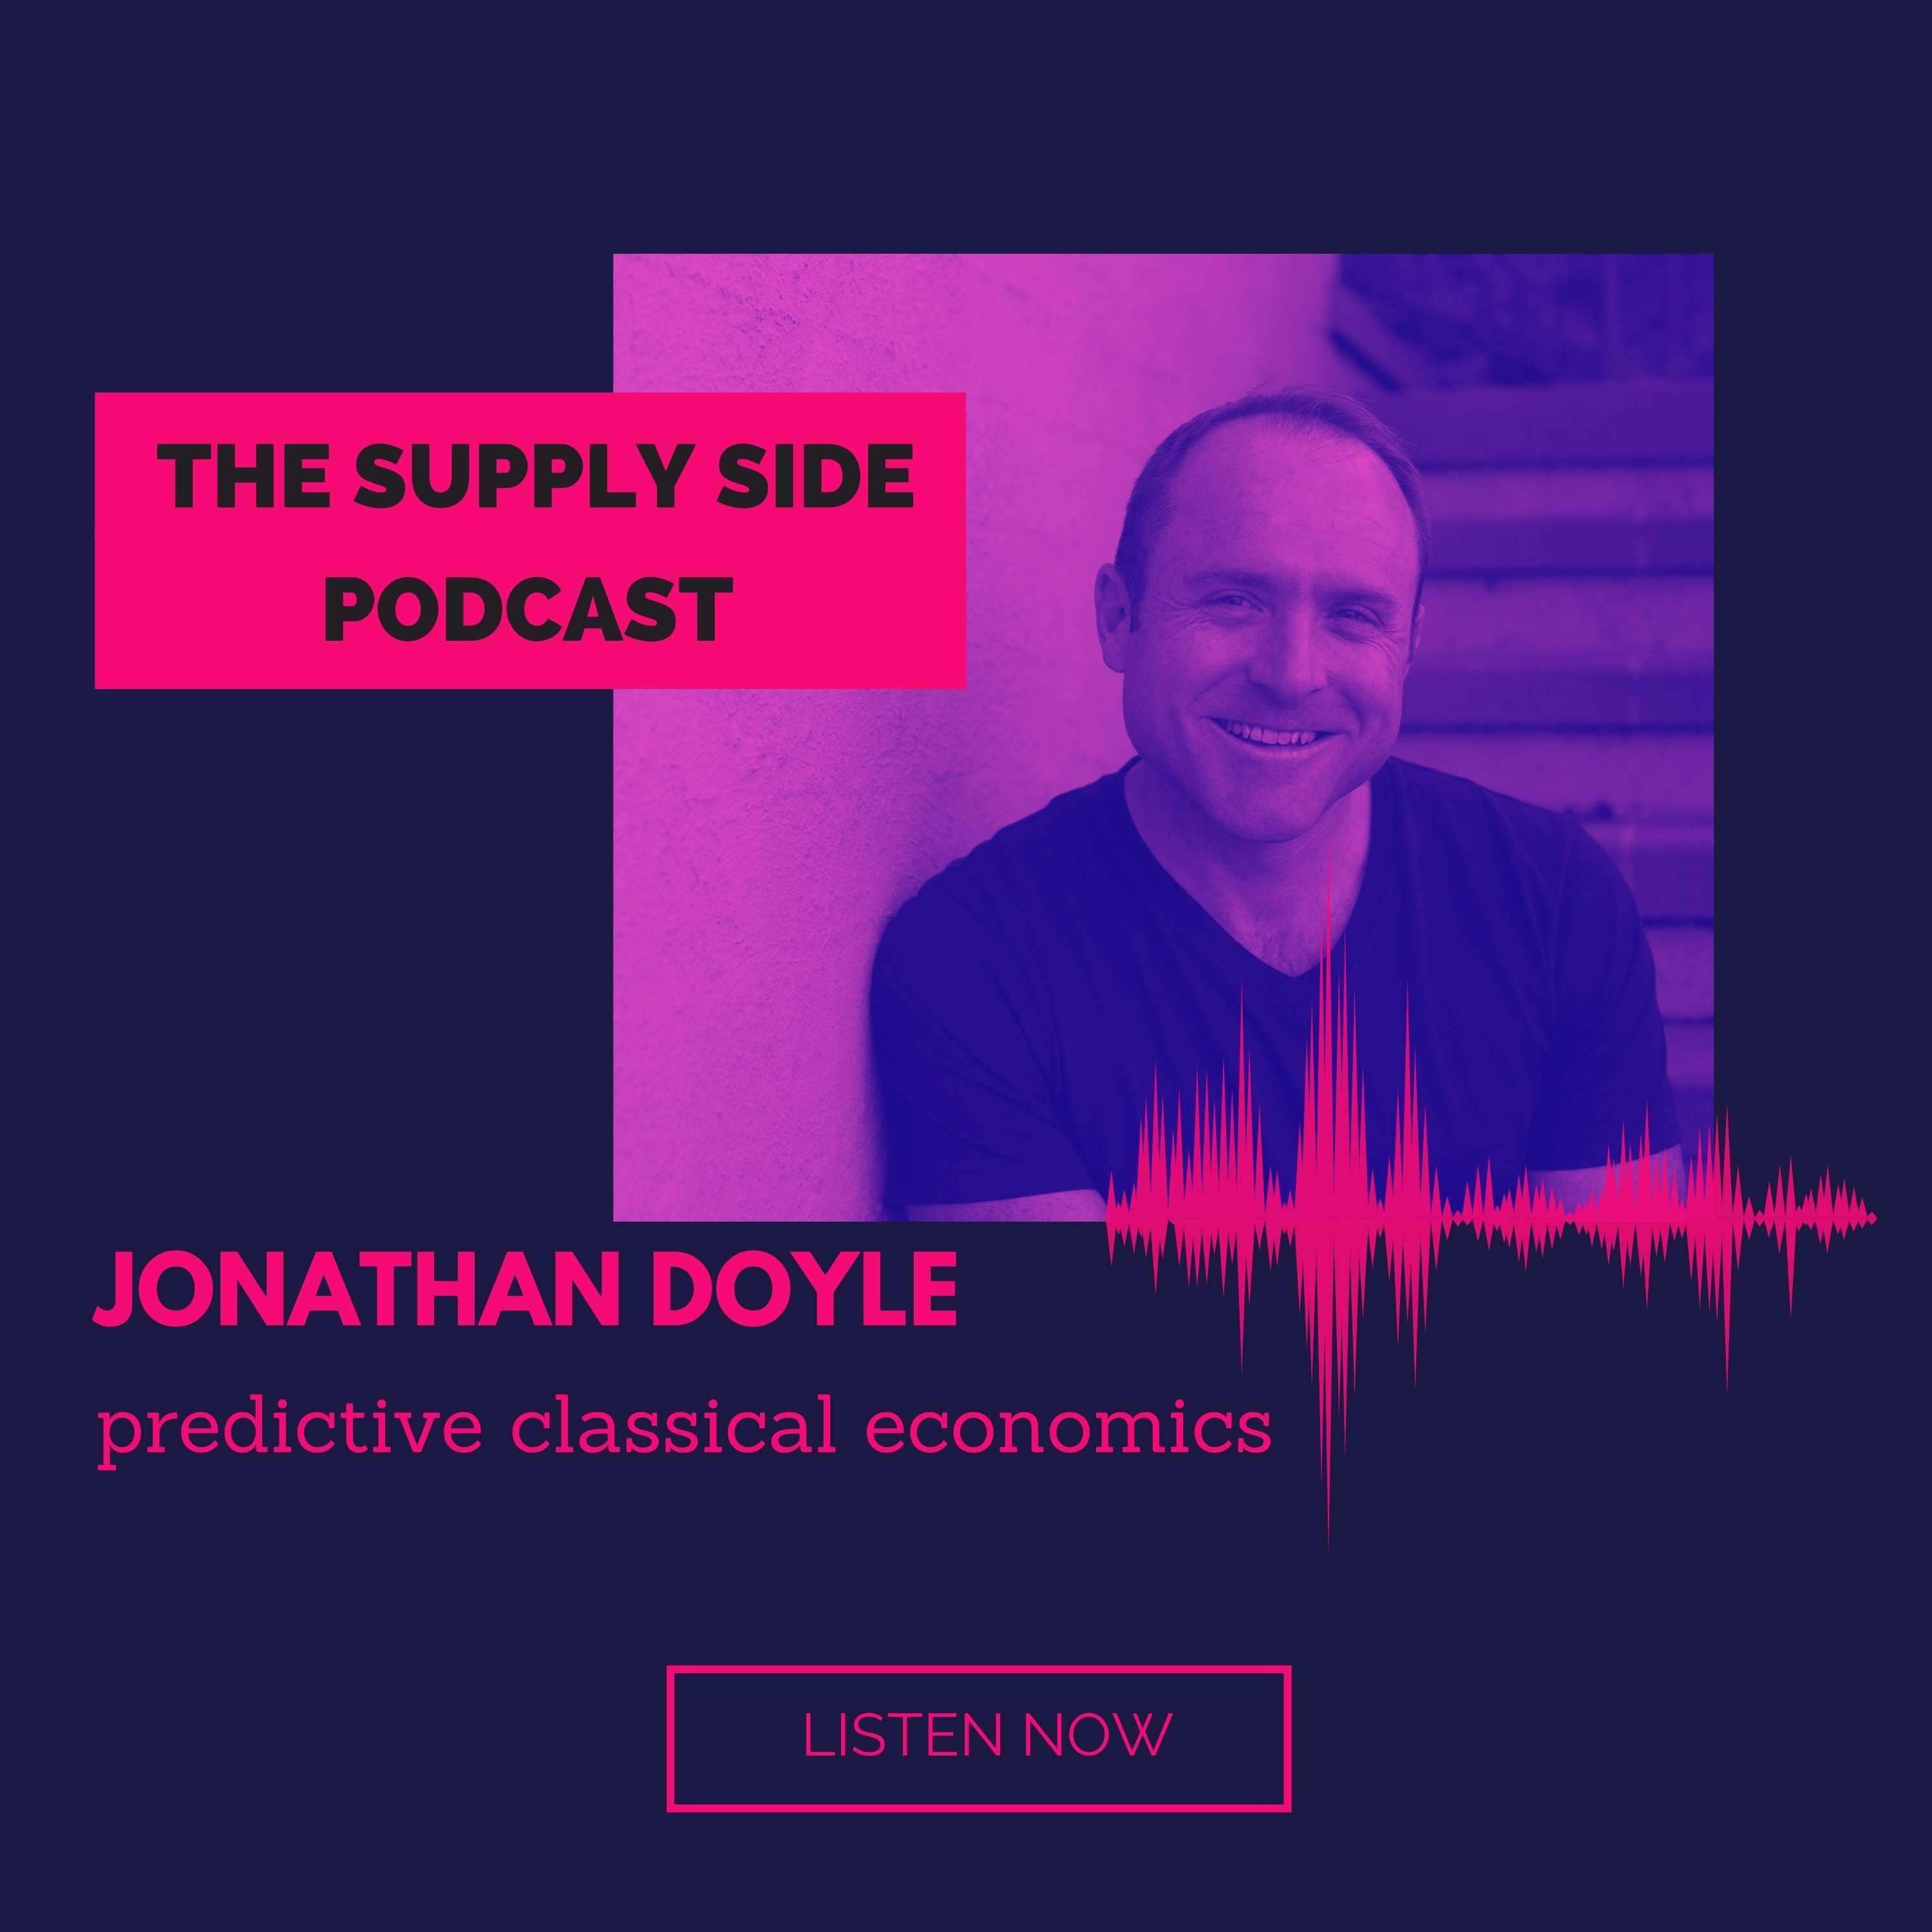 Artwork for podcast The Supply Side